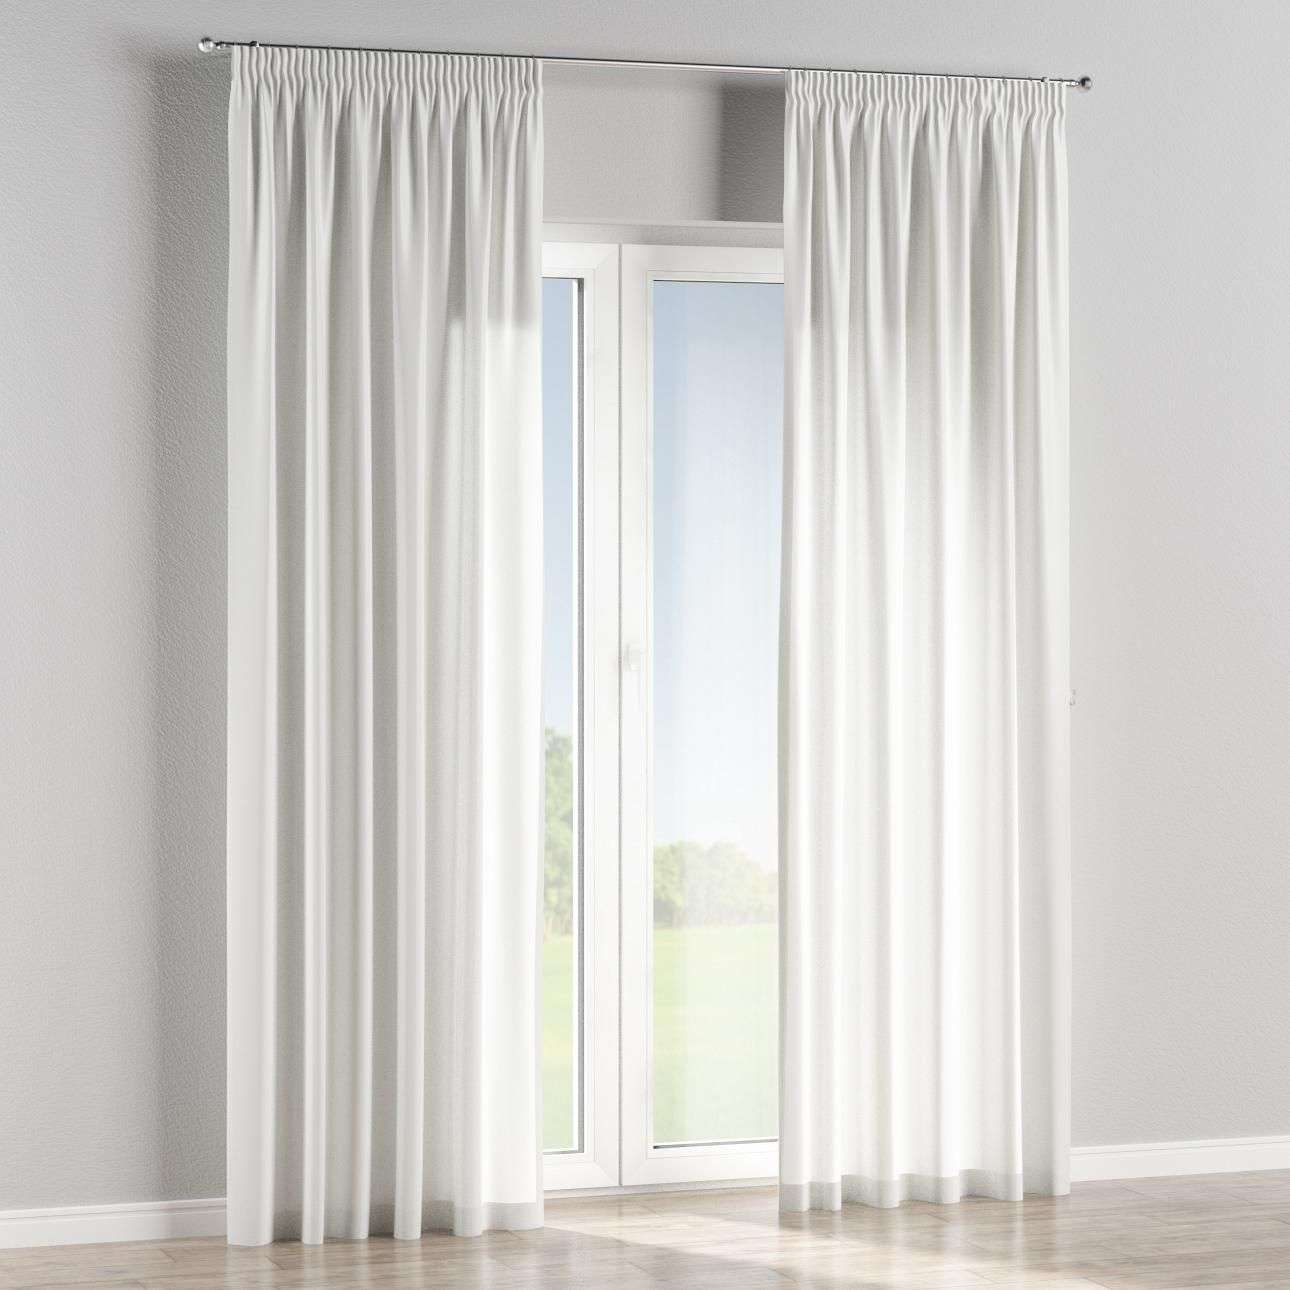 Pencil pleat curtains in collection Milano, fabric: 150-35